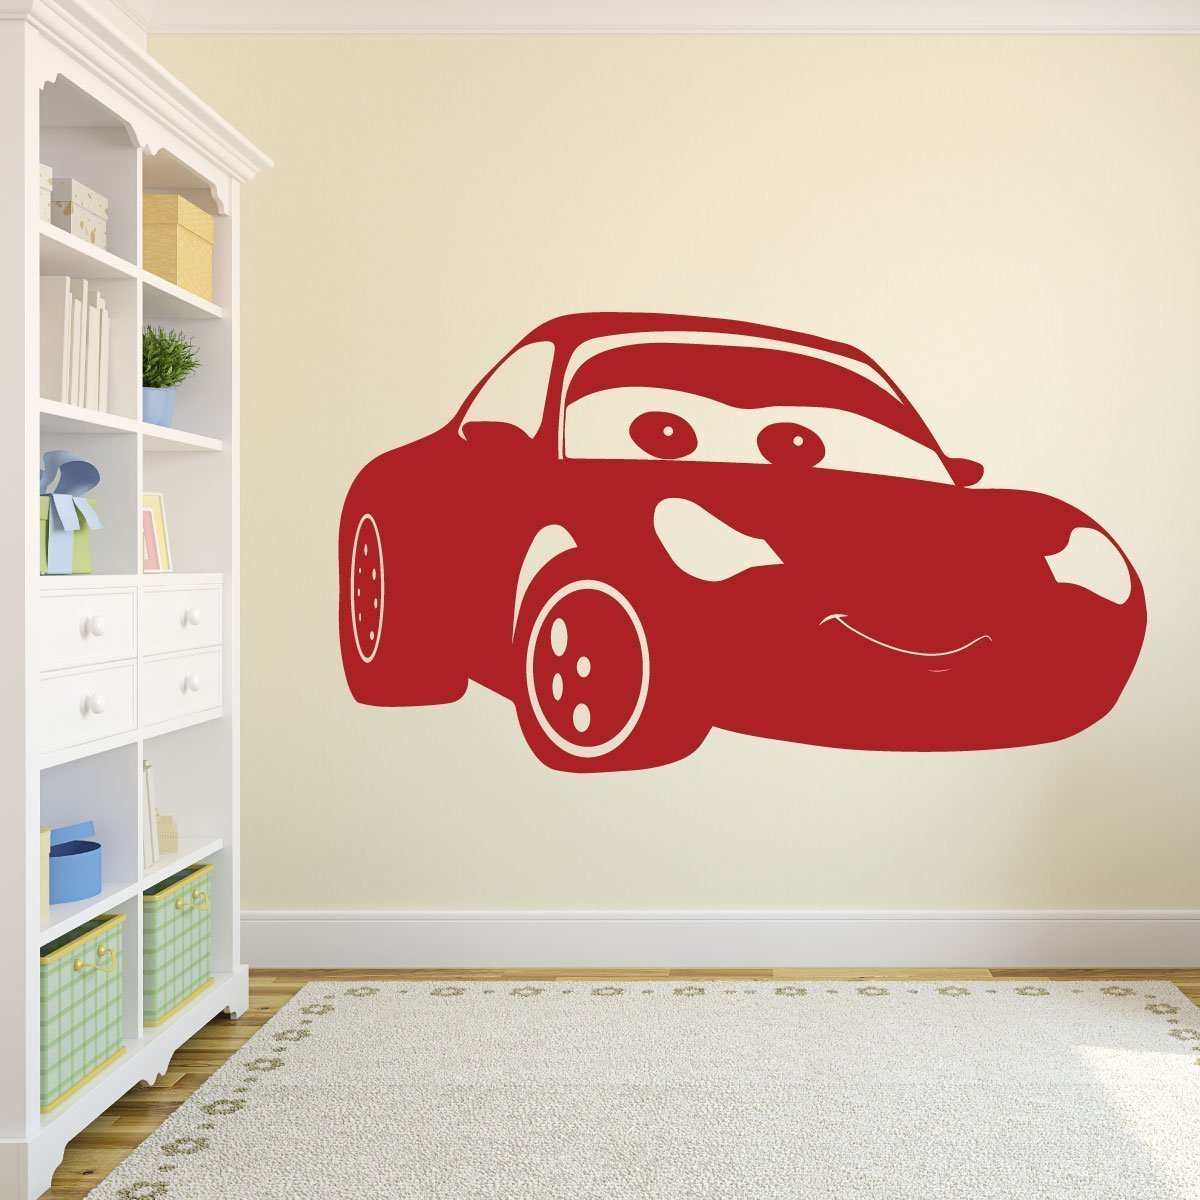 Disney Cars Sally Vinyl Decoration - Pixar Wall Decal - Personalized Removable Art Sticker for Bedroom, Playroom, or Gameroom